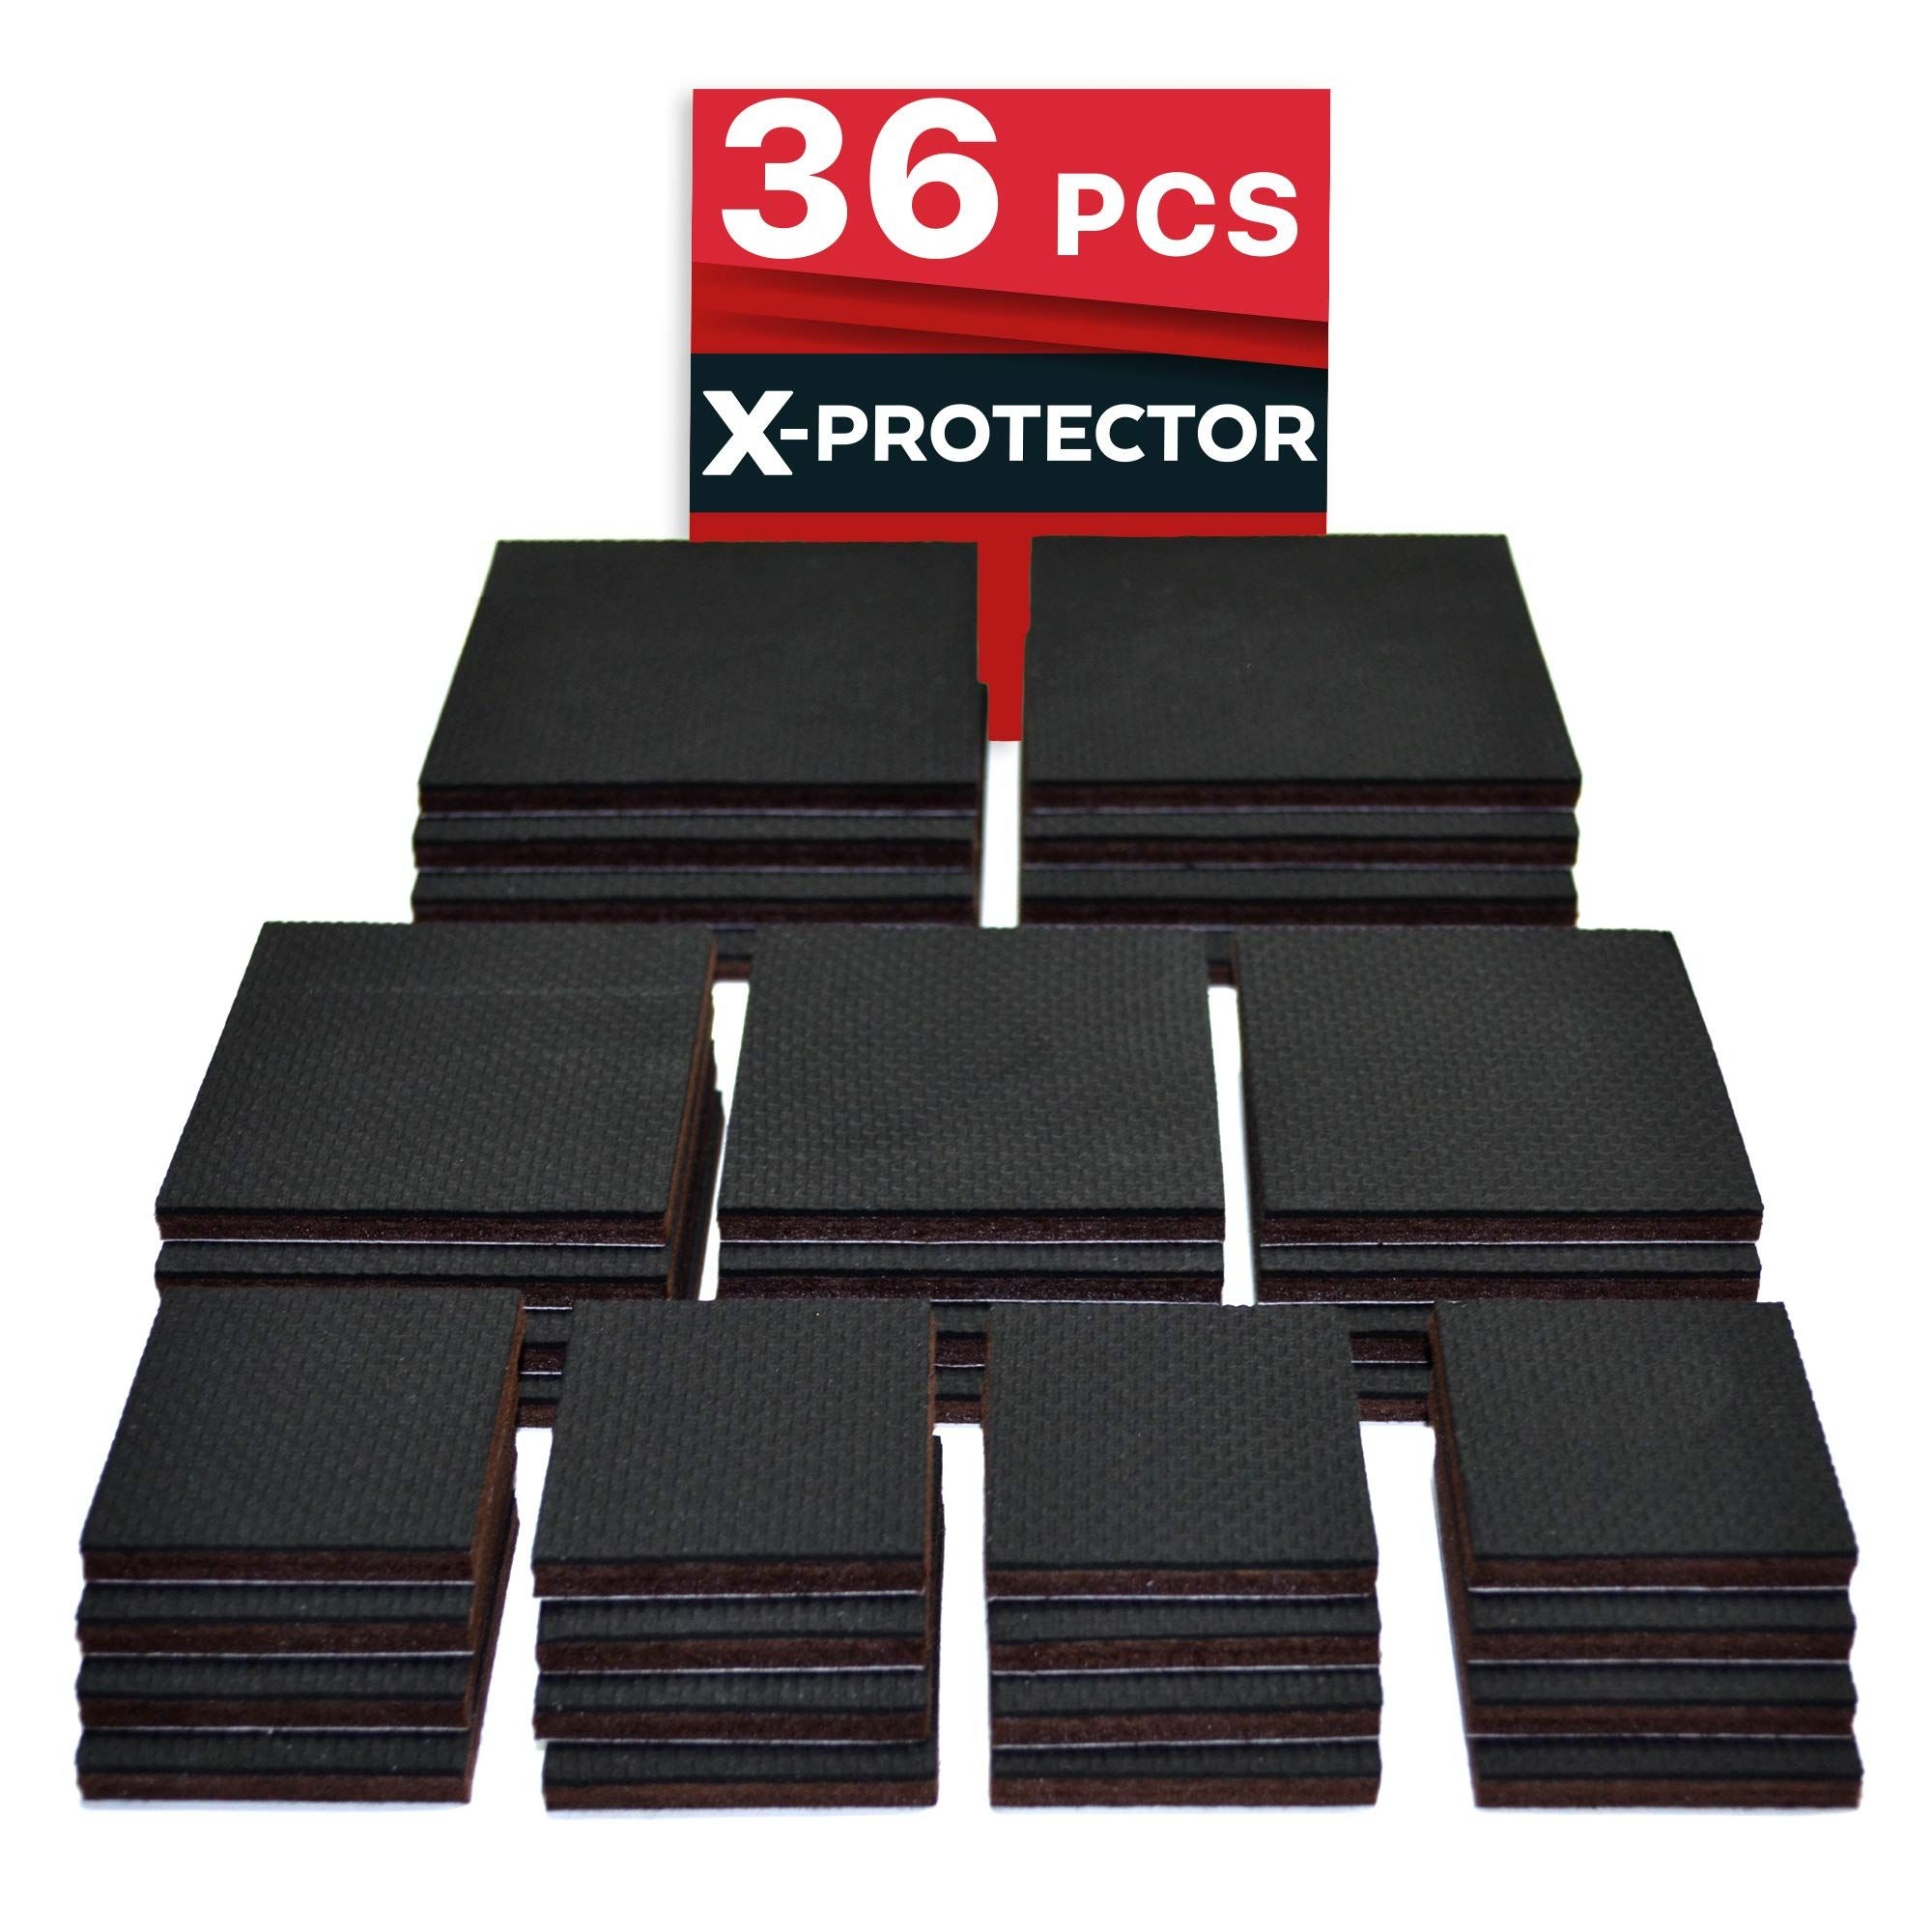 Non Slip Pads X Protector Great Pack 36 Pack 16 Pcs 2a 12 Pcs 3a 8 Pcs 4a Furniture Pads B Furniture Pads Furniture Grippers Rubber Furniture Pads